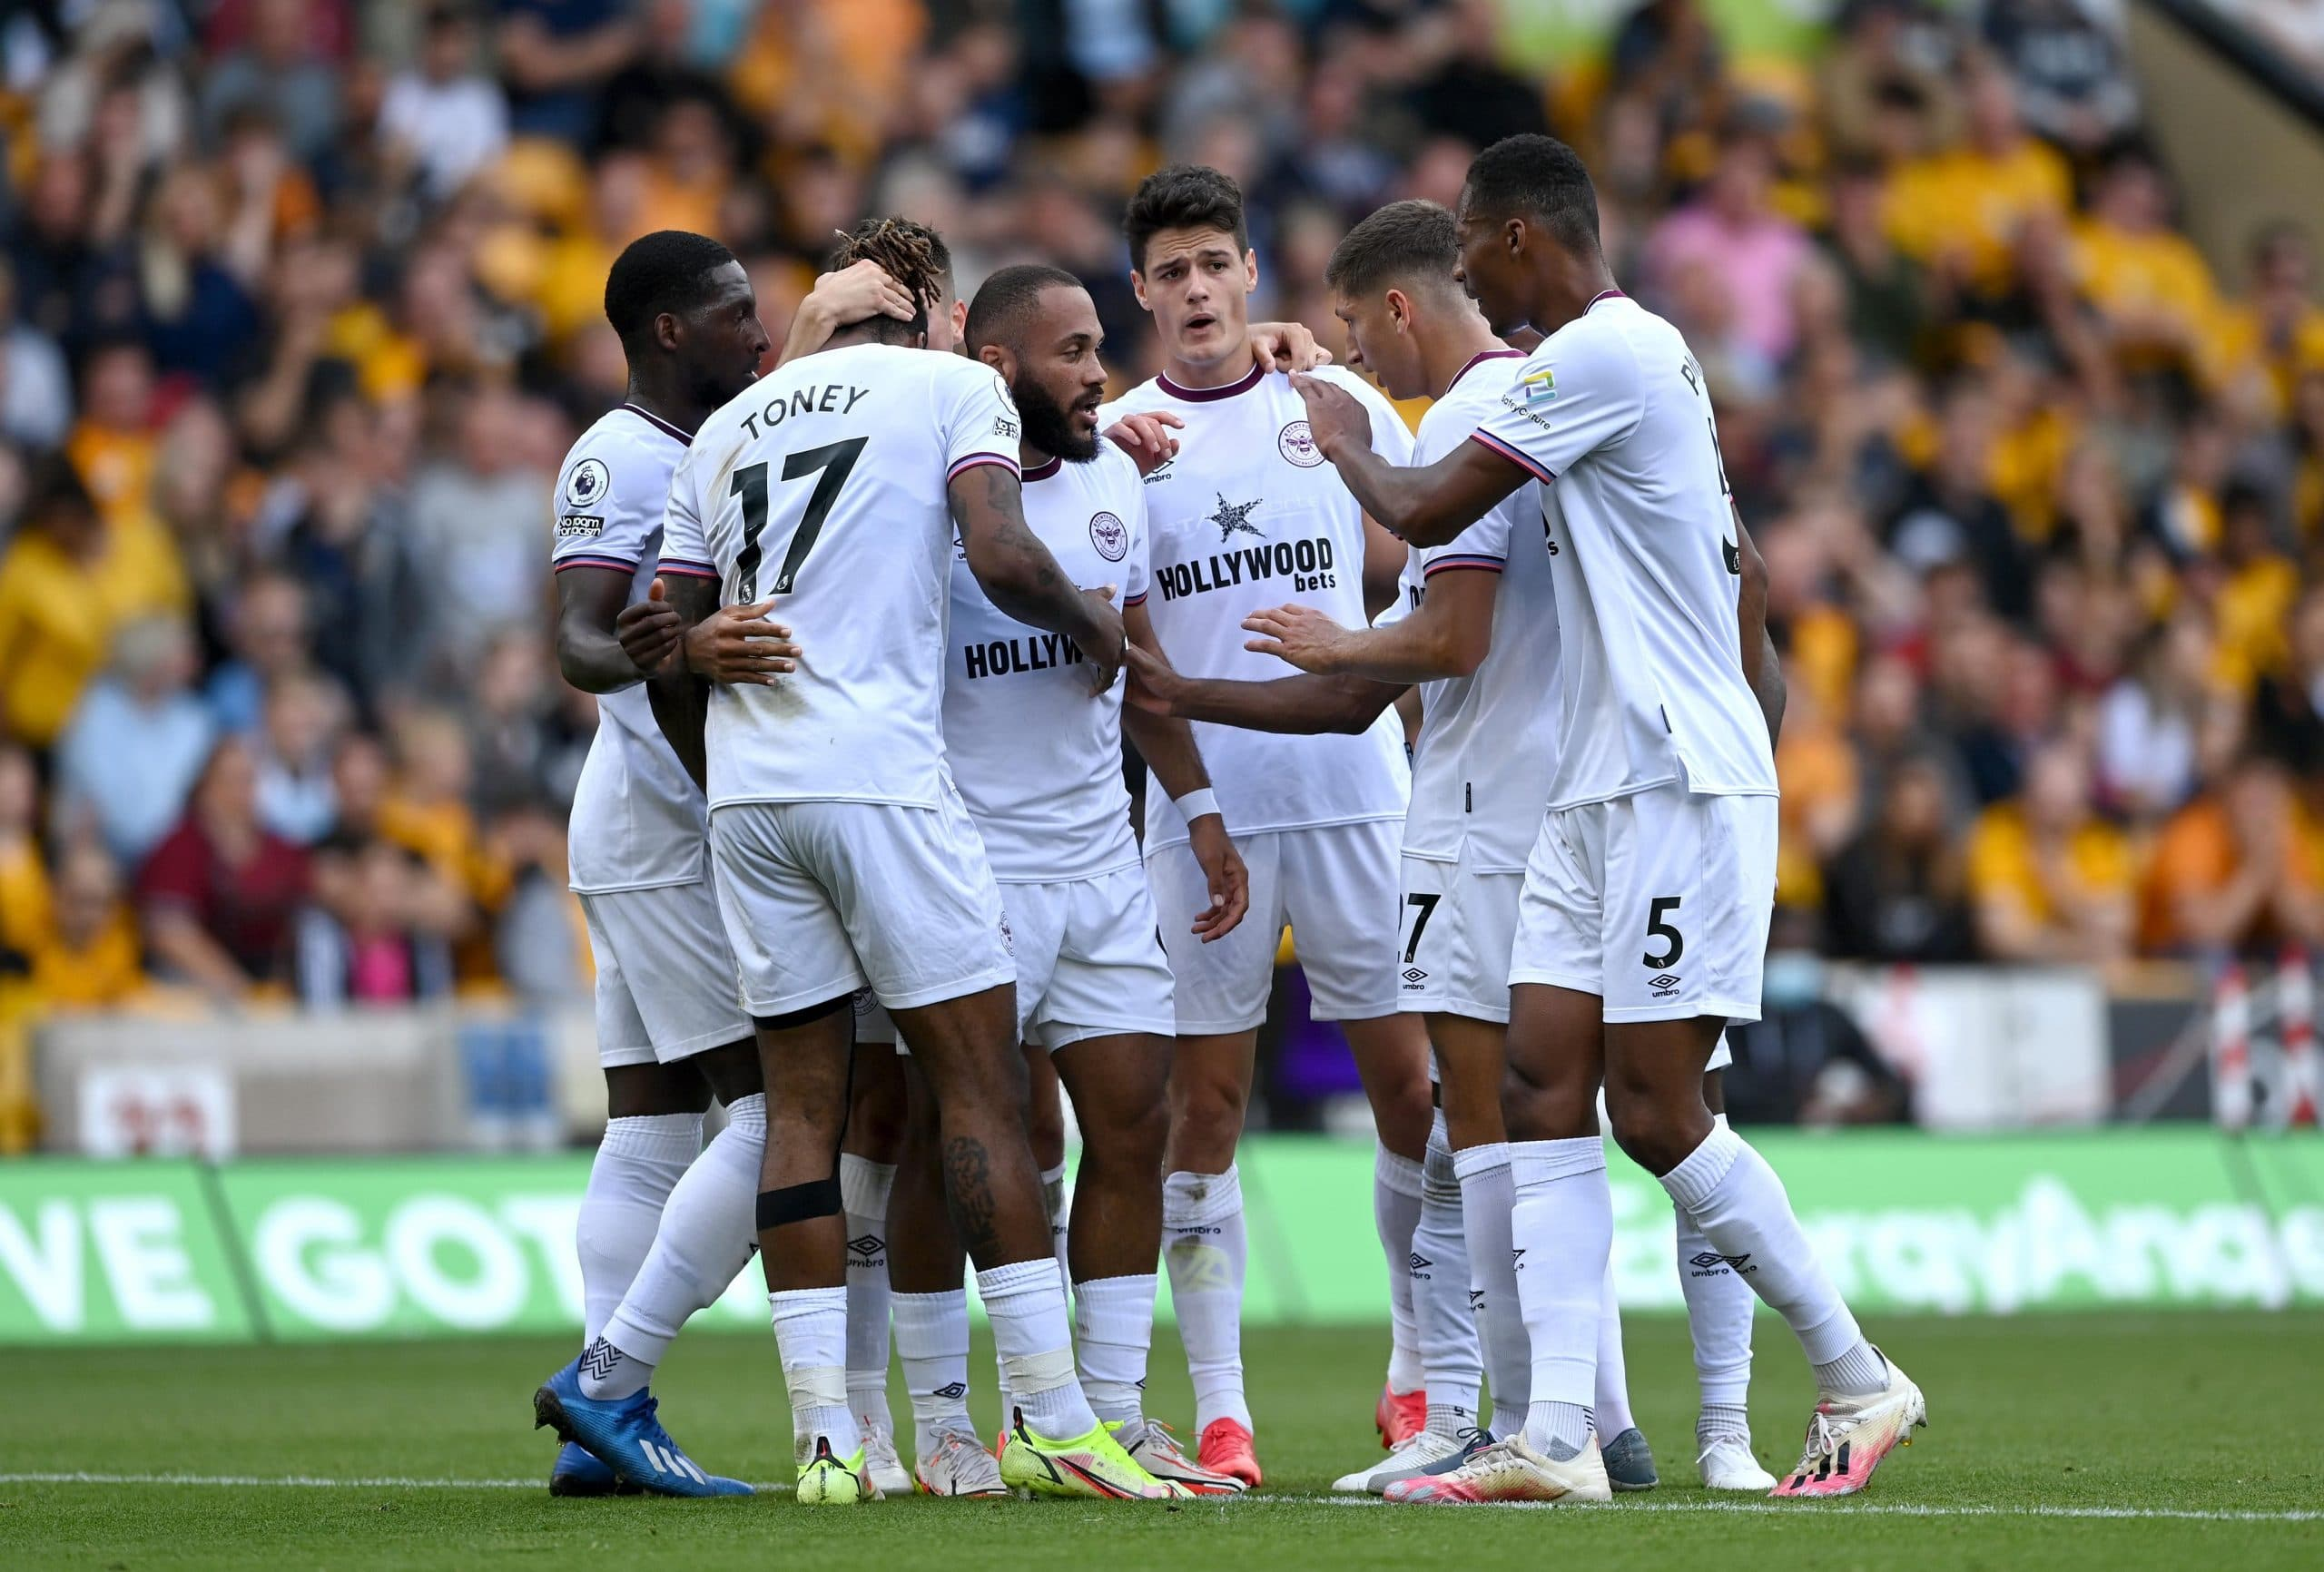 Premier League: Onyeka Subbed On As 10-man Brentford Win At Wolves